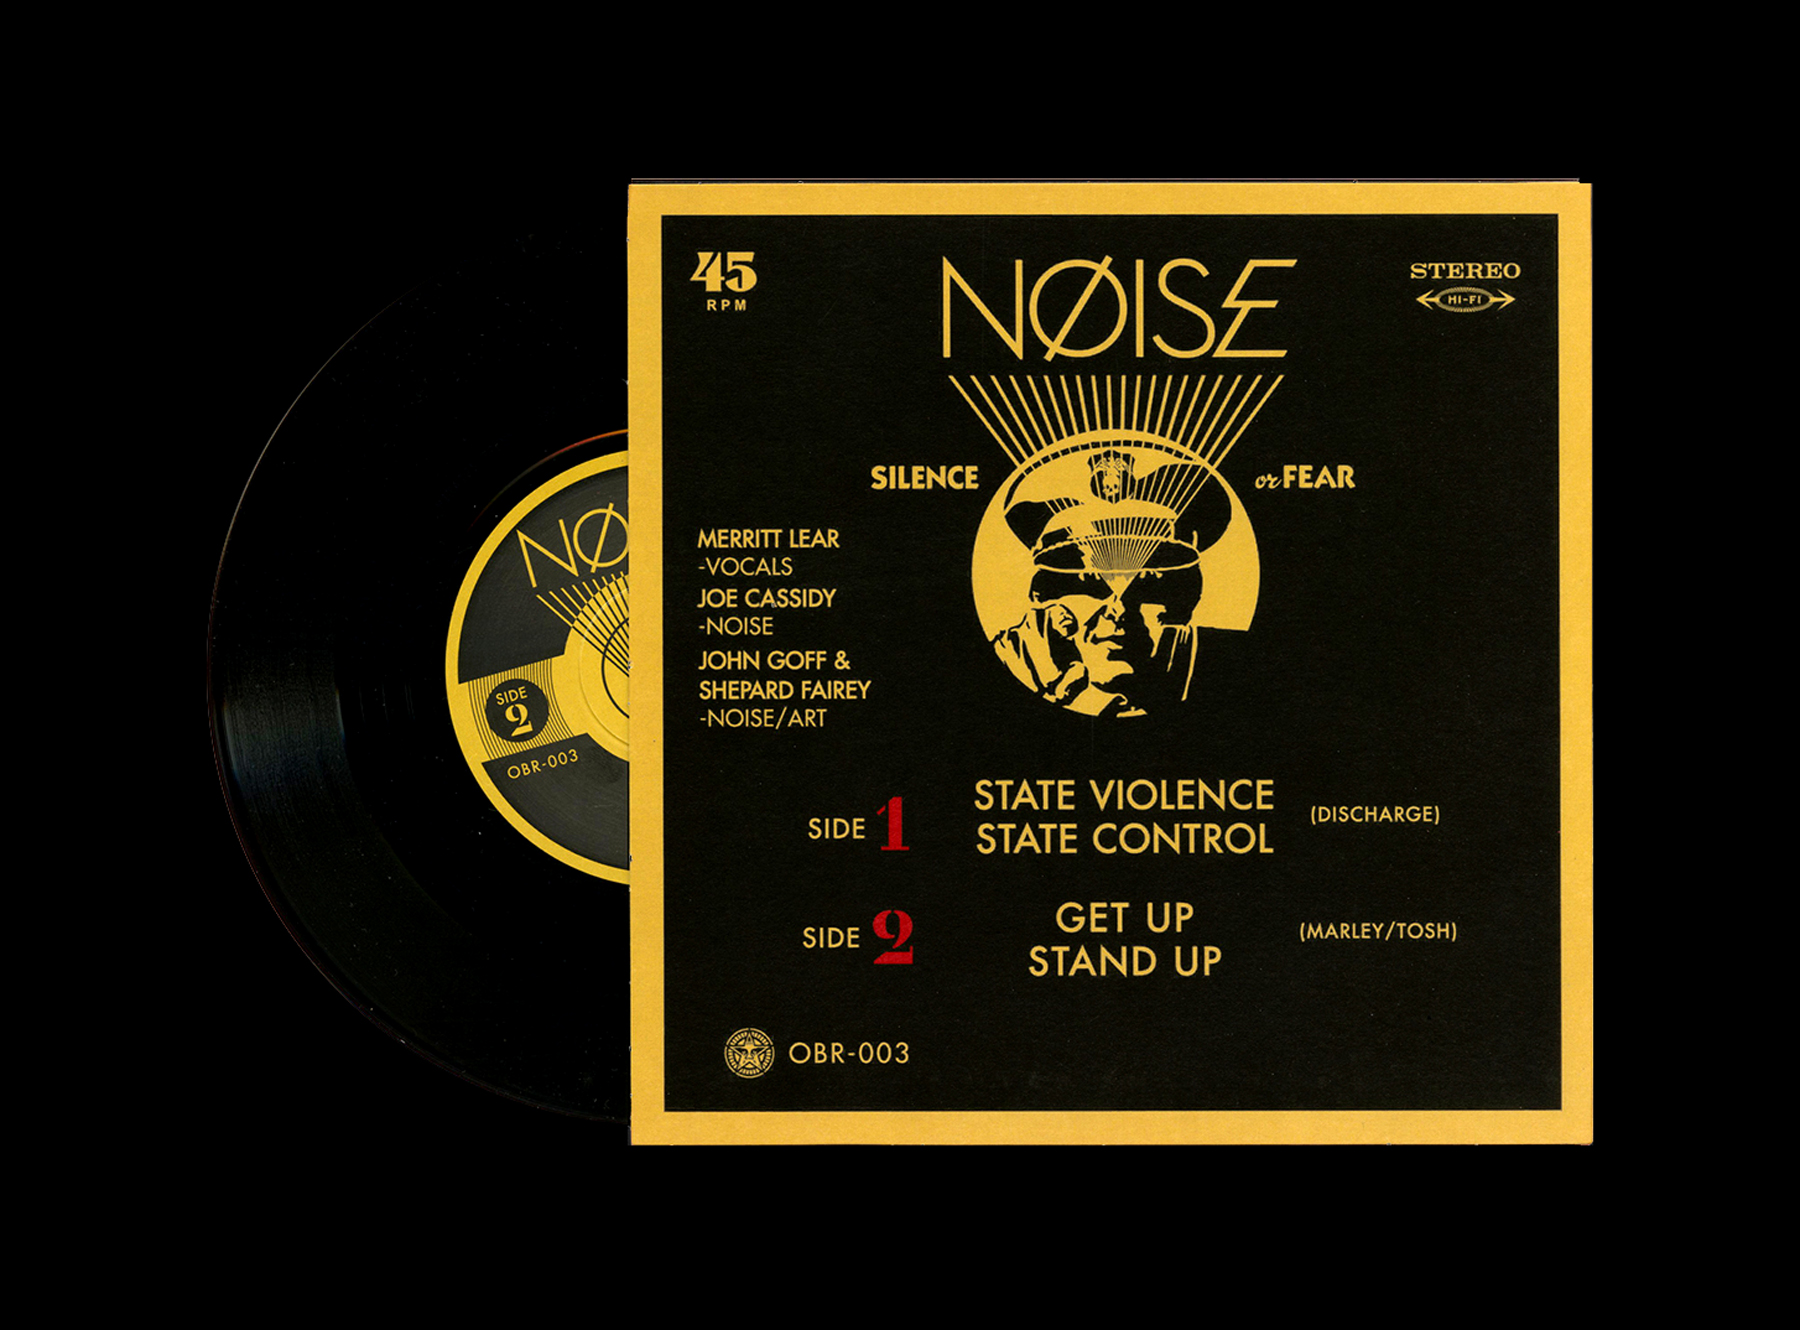 01-Noise-State-Control-7'-back-black.jpg